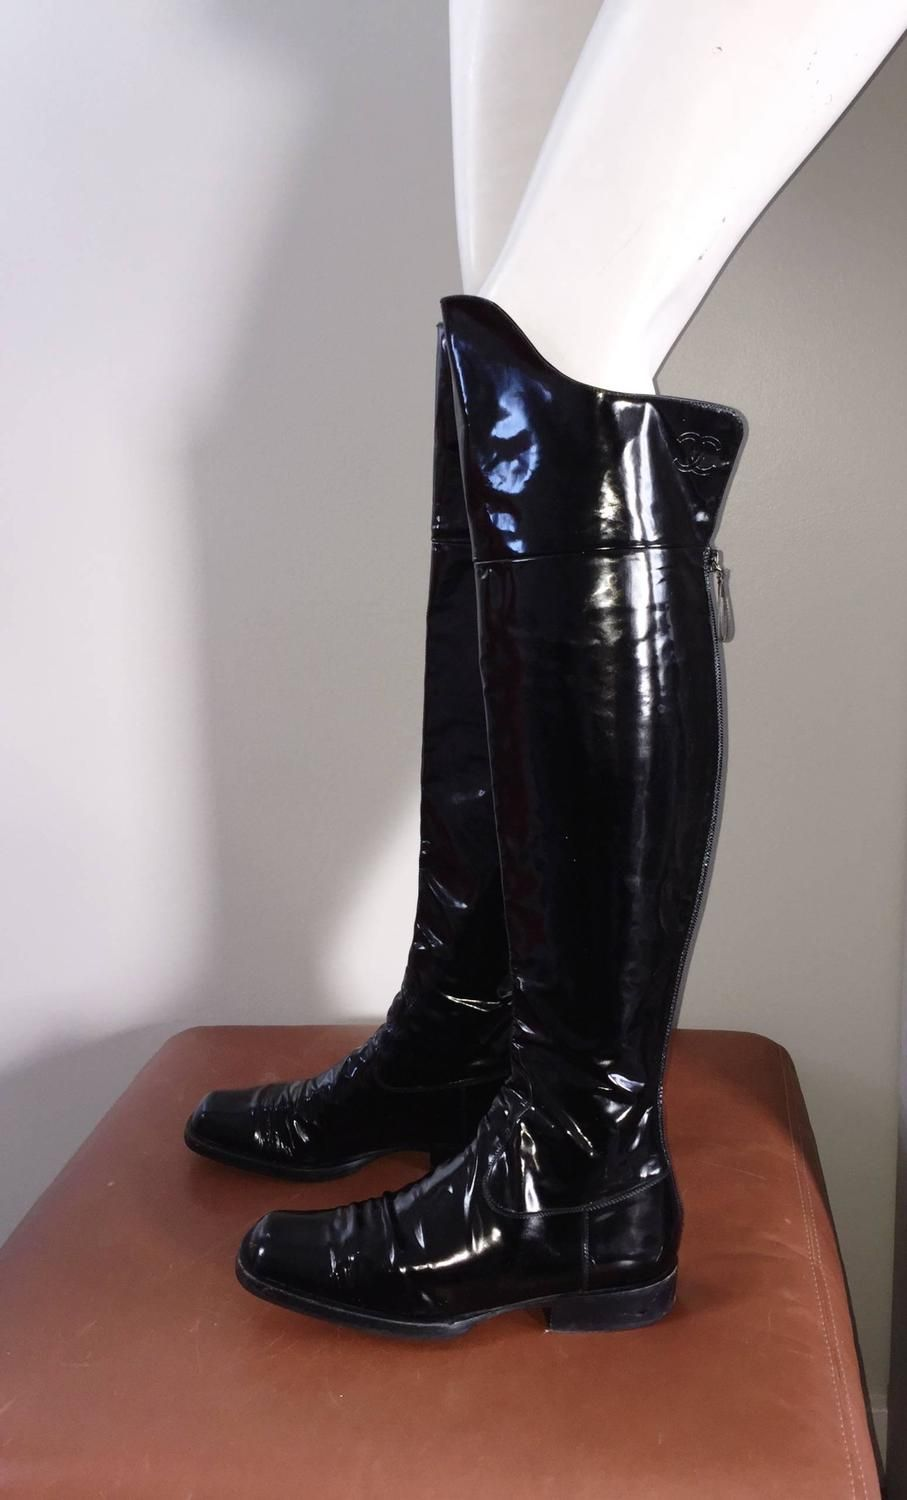 80c9a6339ee Coveted Chanel Black Patent Leather Over The Knee Riding Flat Boots Size 38  8 image 6